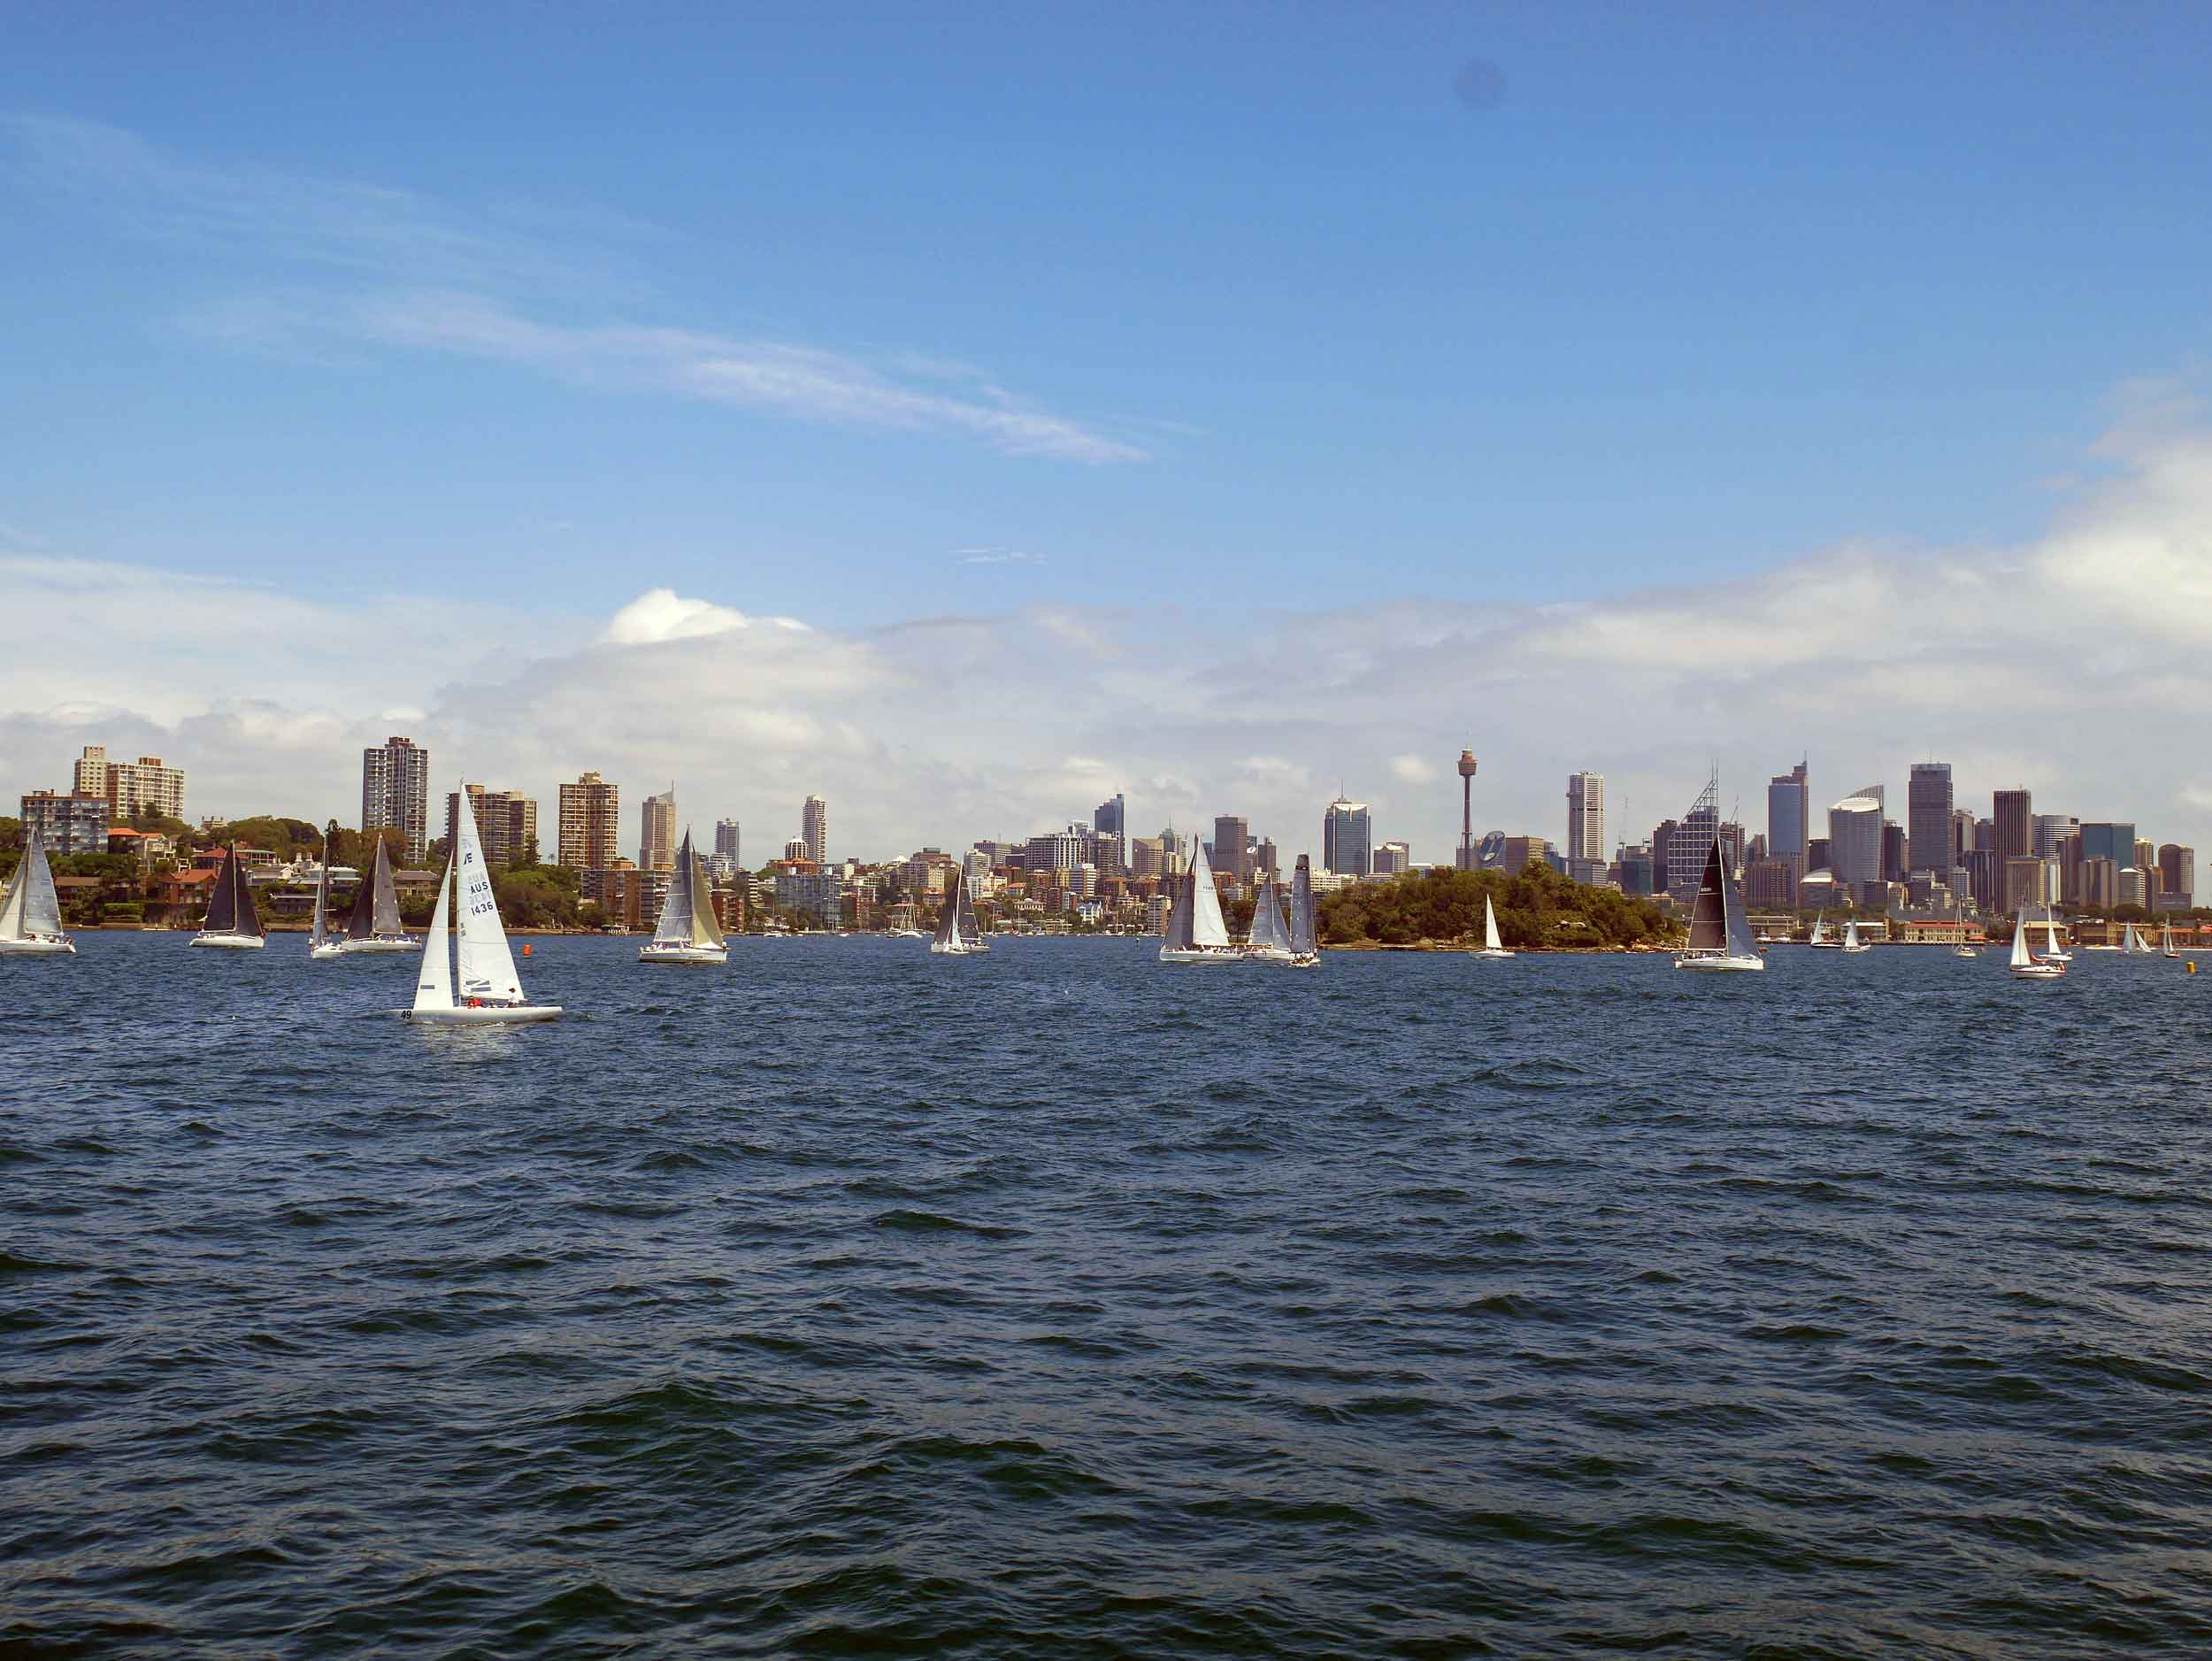 The Harbour was full of sails and watercraft attempting to beat the heat (Feb 4).